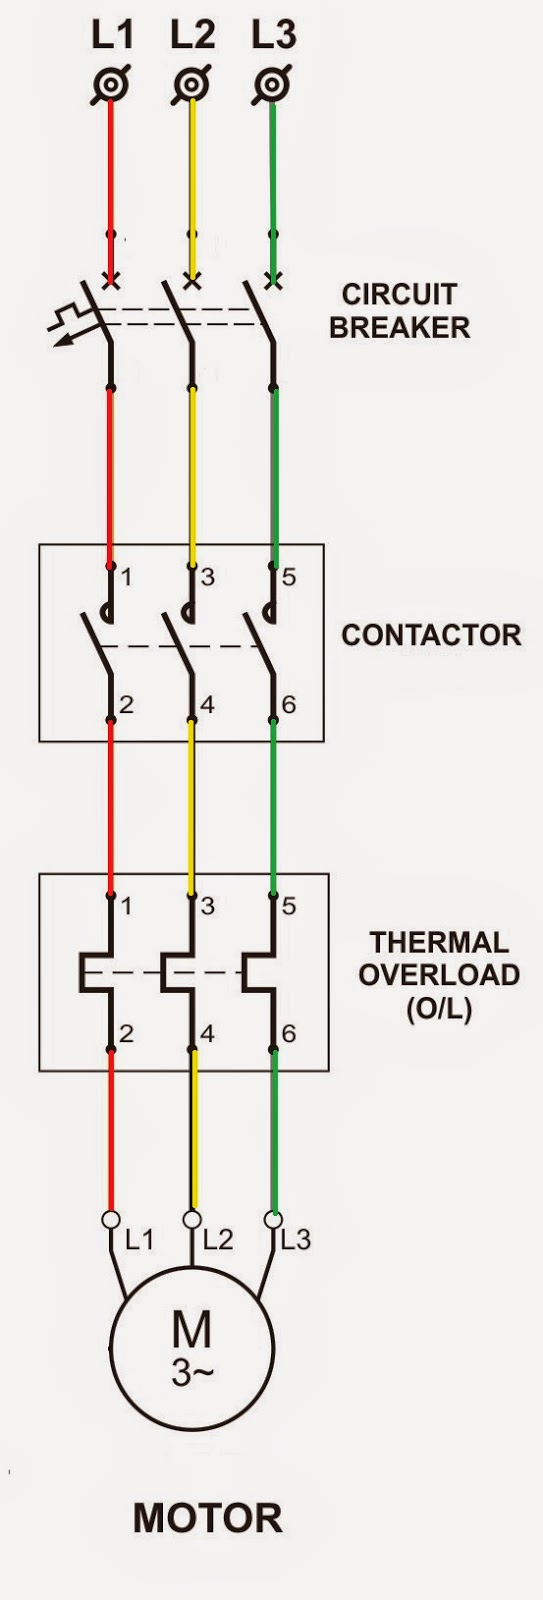 Power+Ciruit electrical standards direct online (dol) starter dol starter wiring diagram 3 phase pdf at mifinder.co